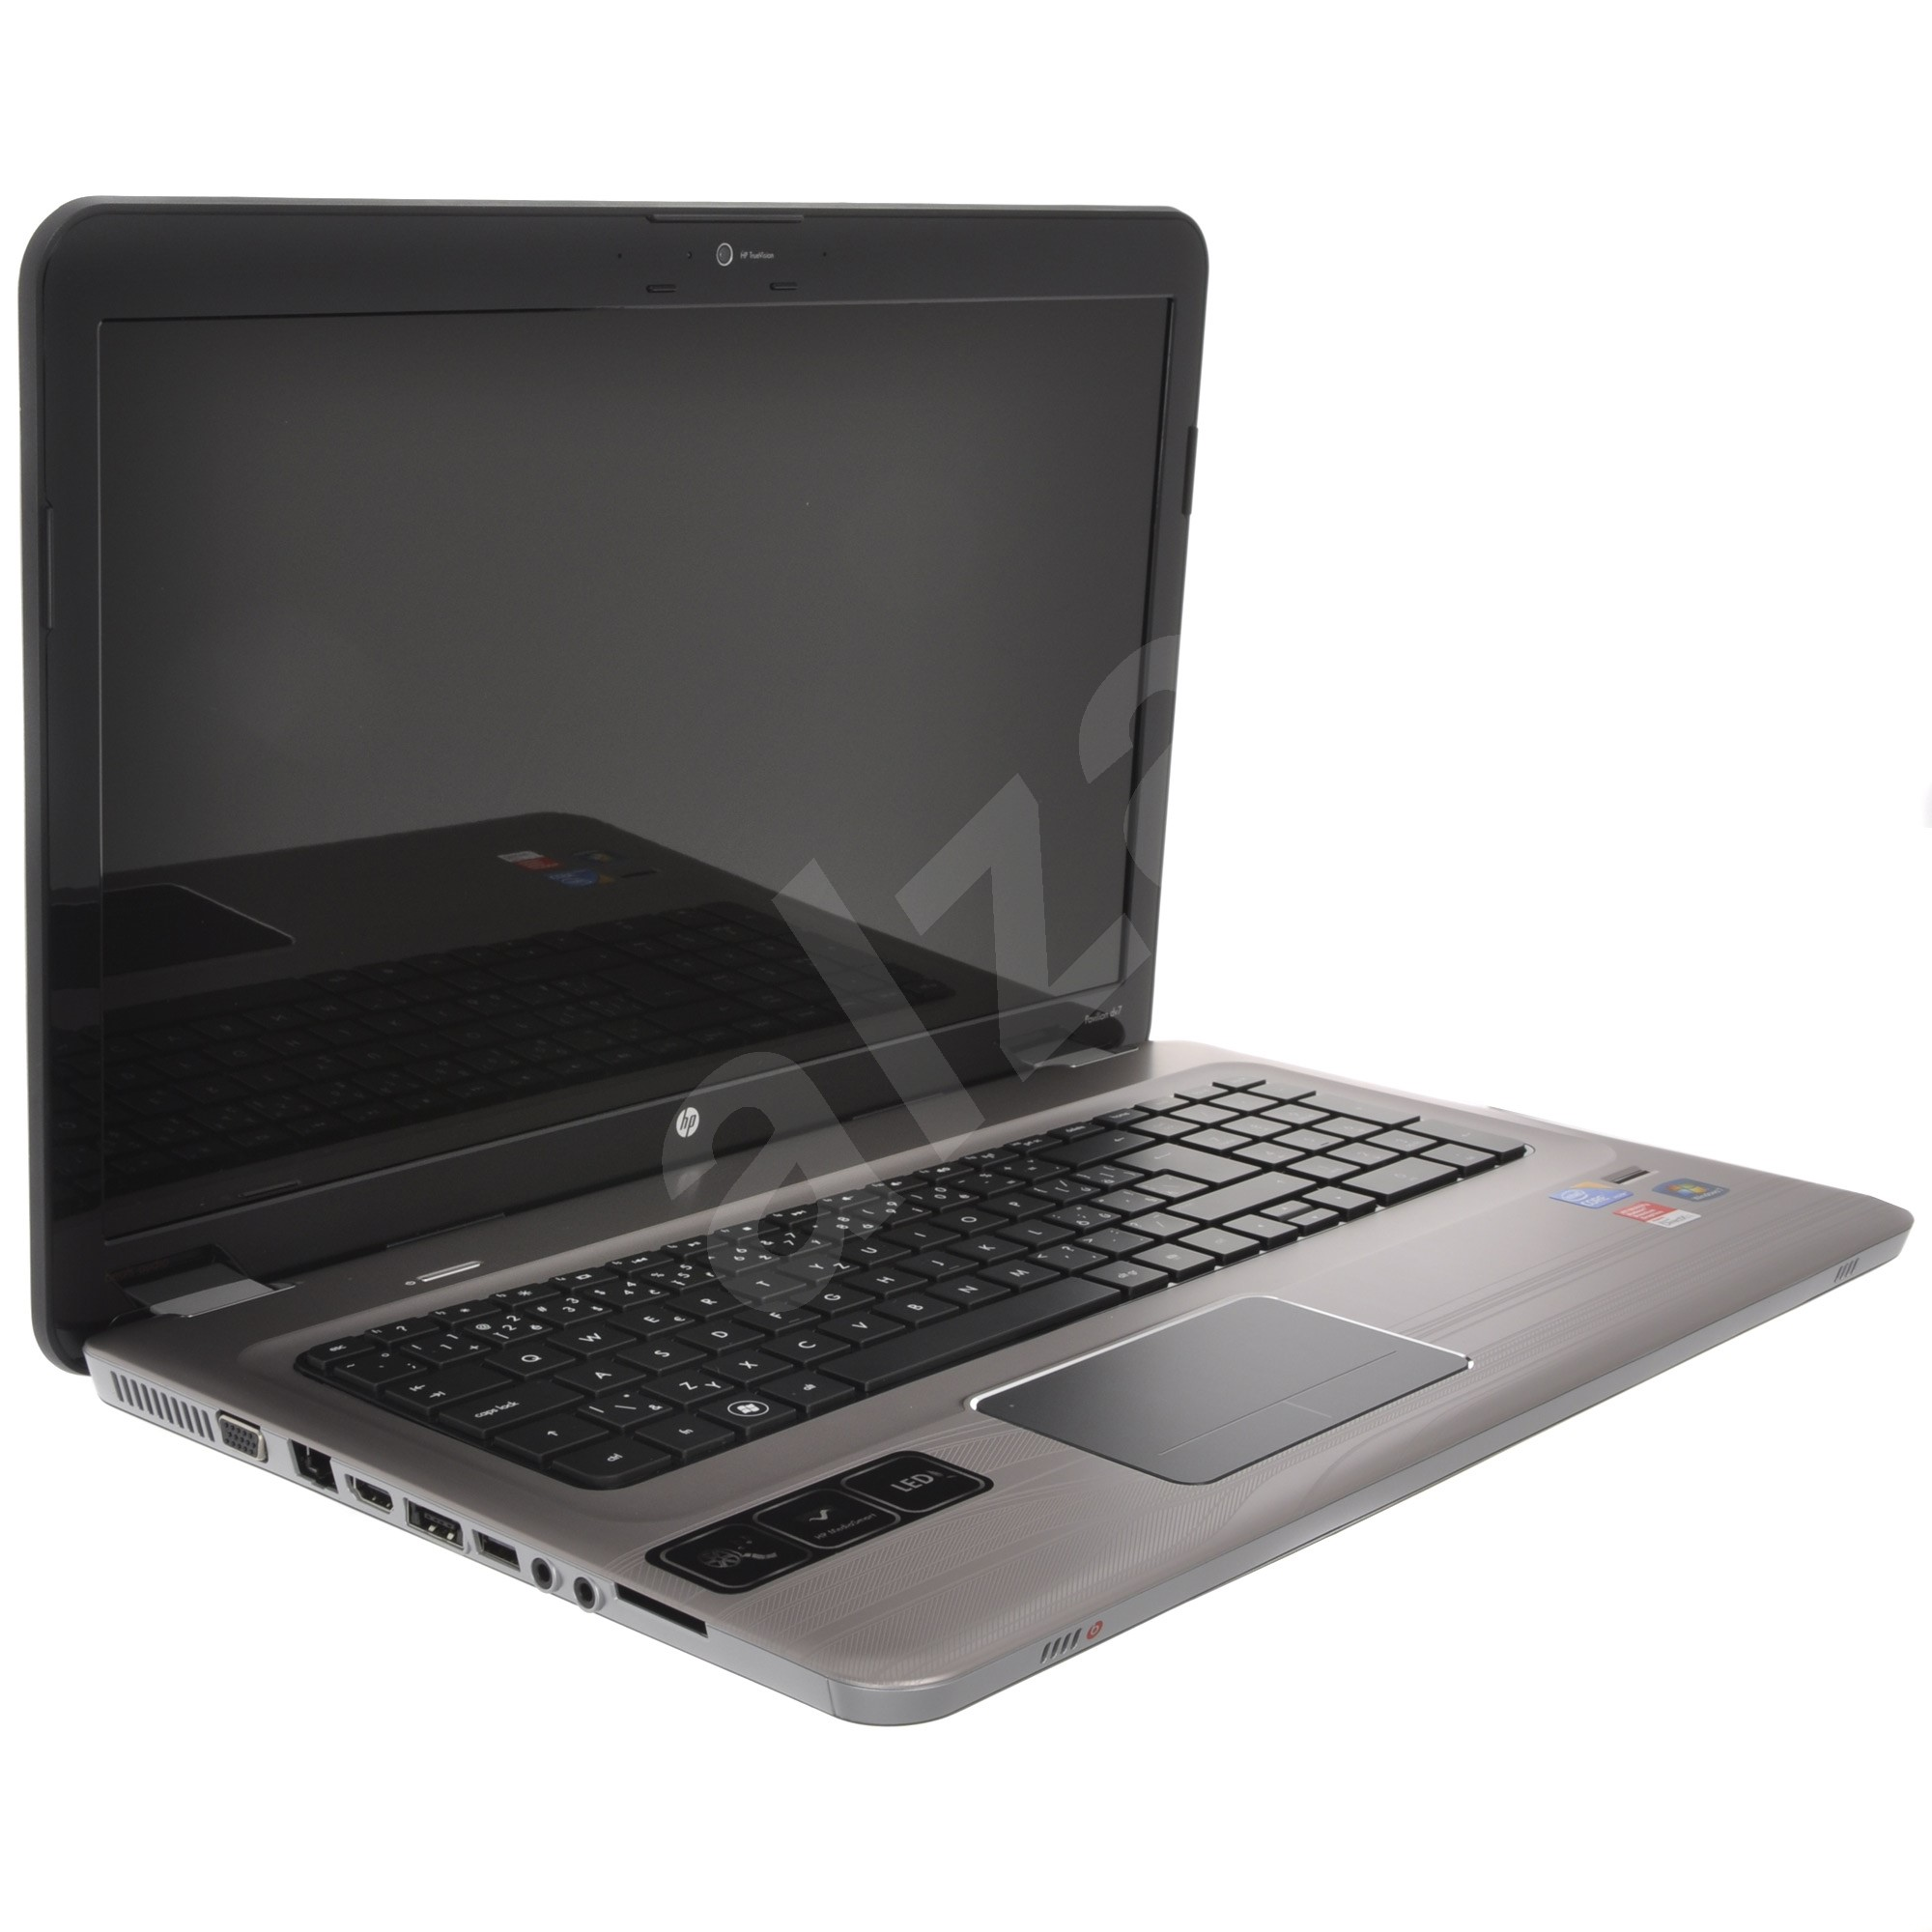 hp pavilion dv7 4350ec notebook. Black Bedroom Furniture Sets. Home Design Ideas